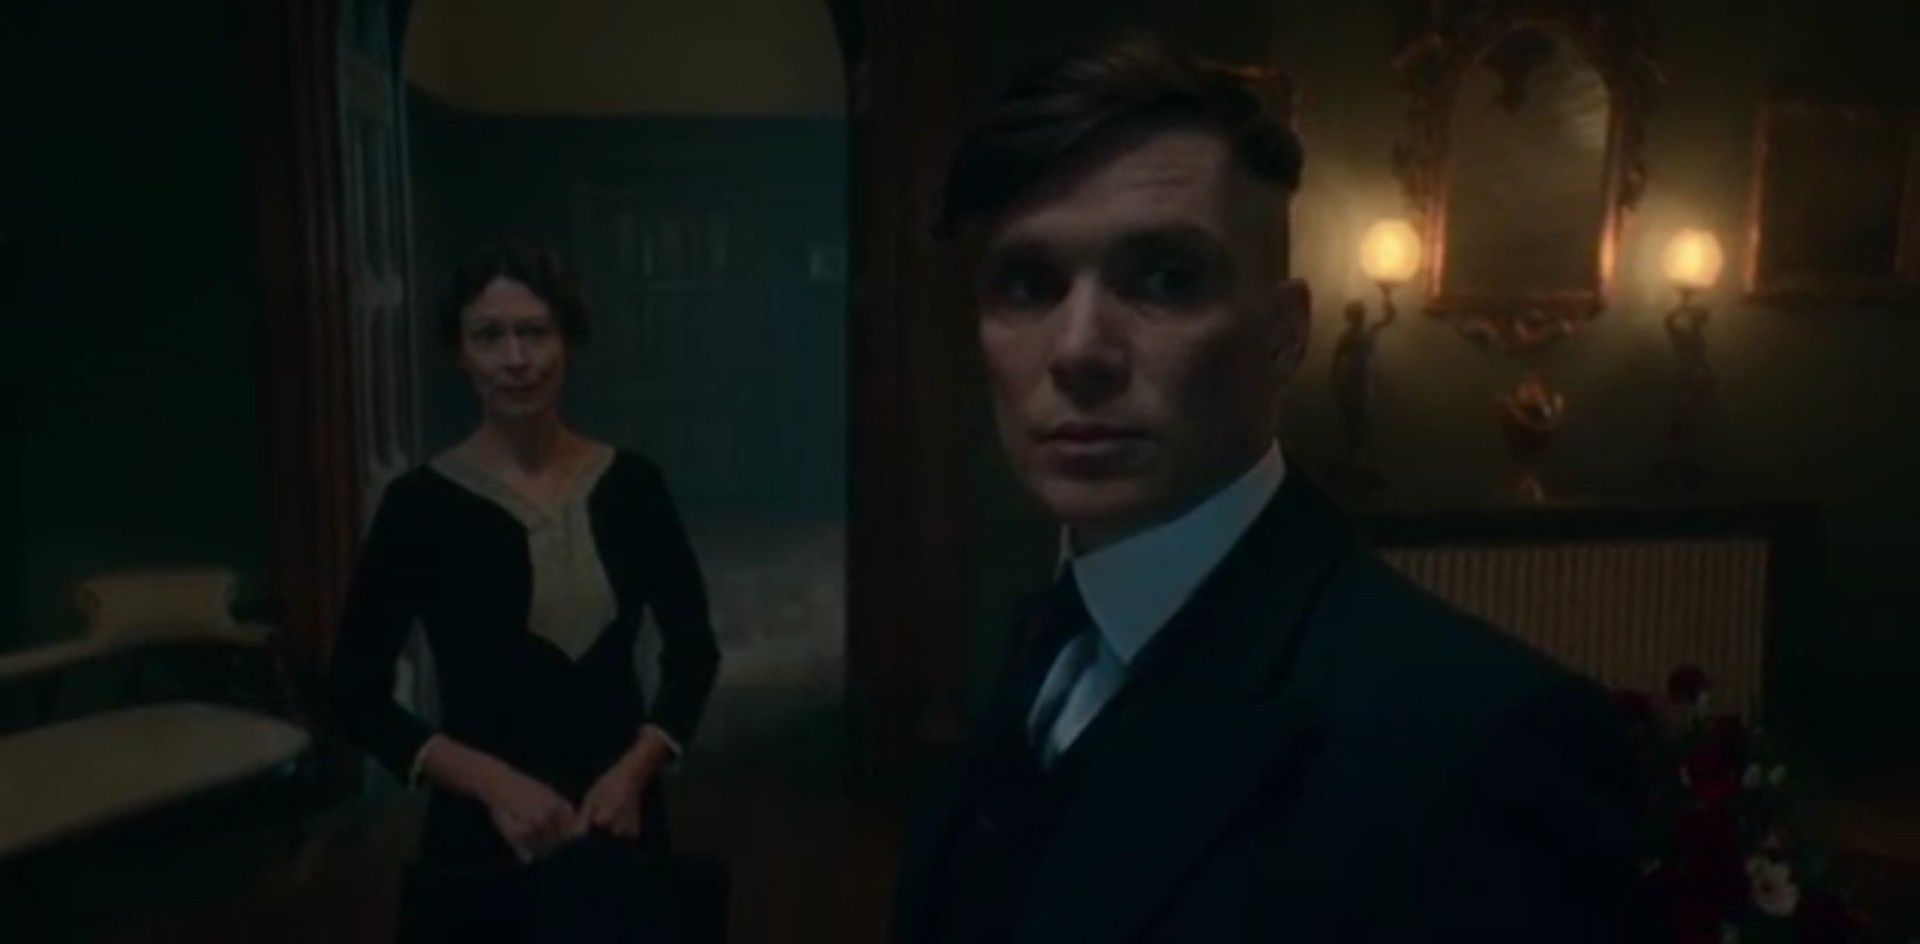 Season 5 Episode 1 Peaky Blinders Movies Showing Cillian Murphy